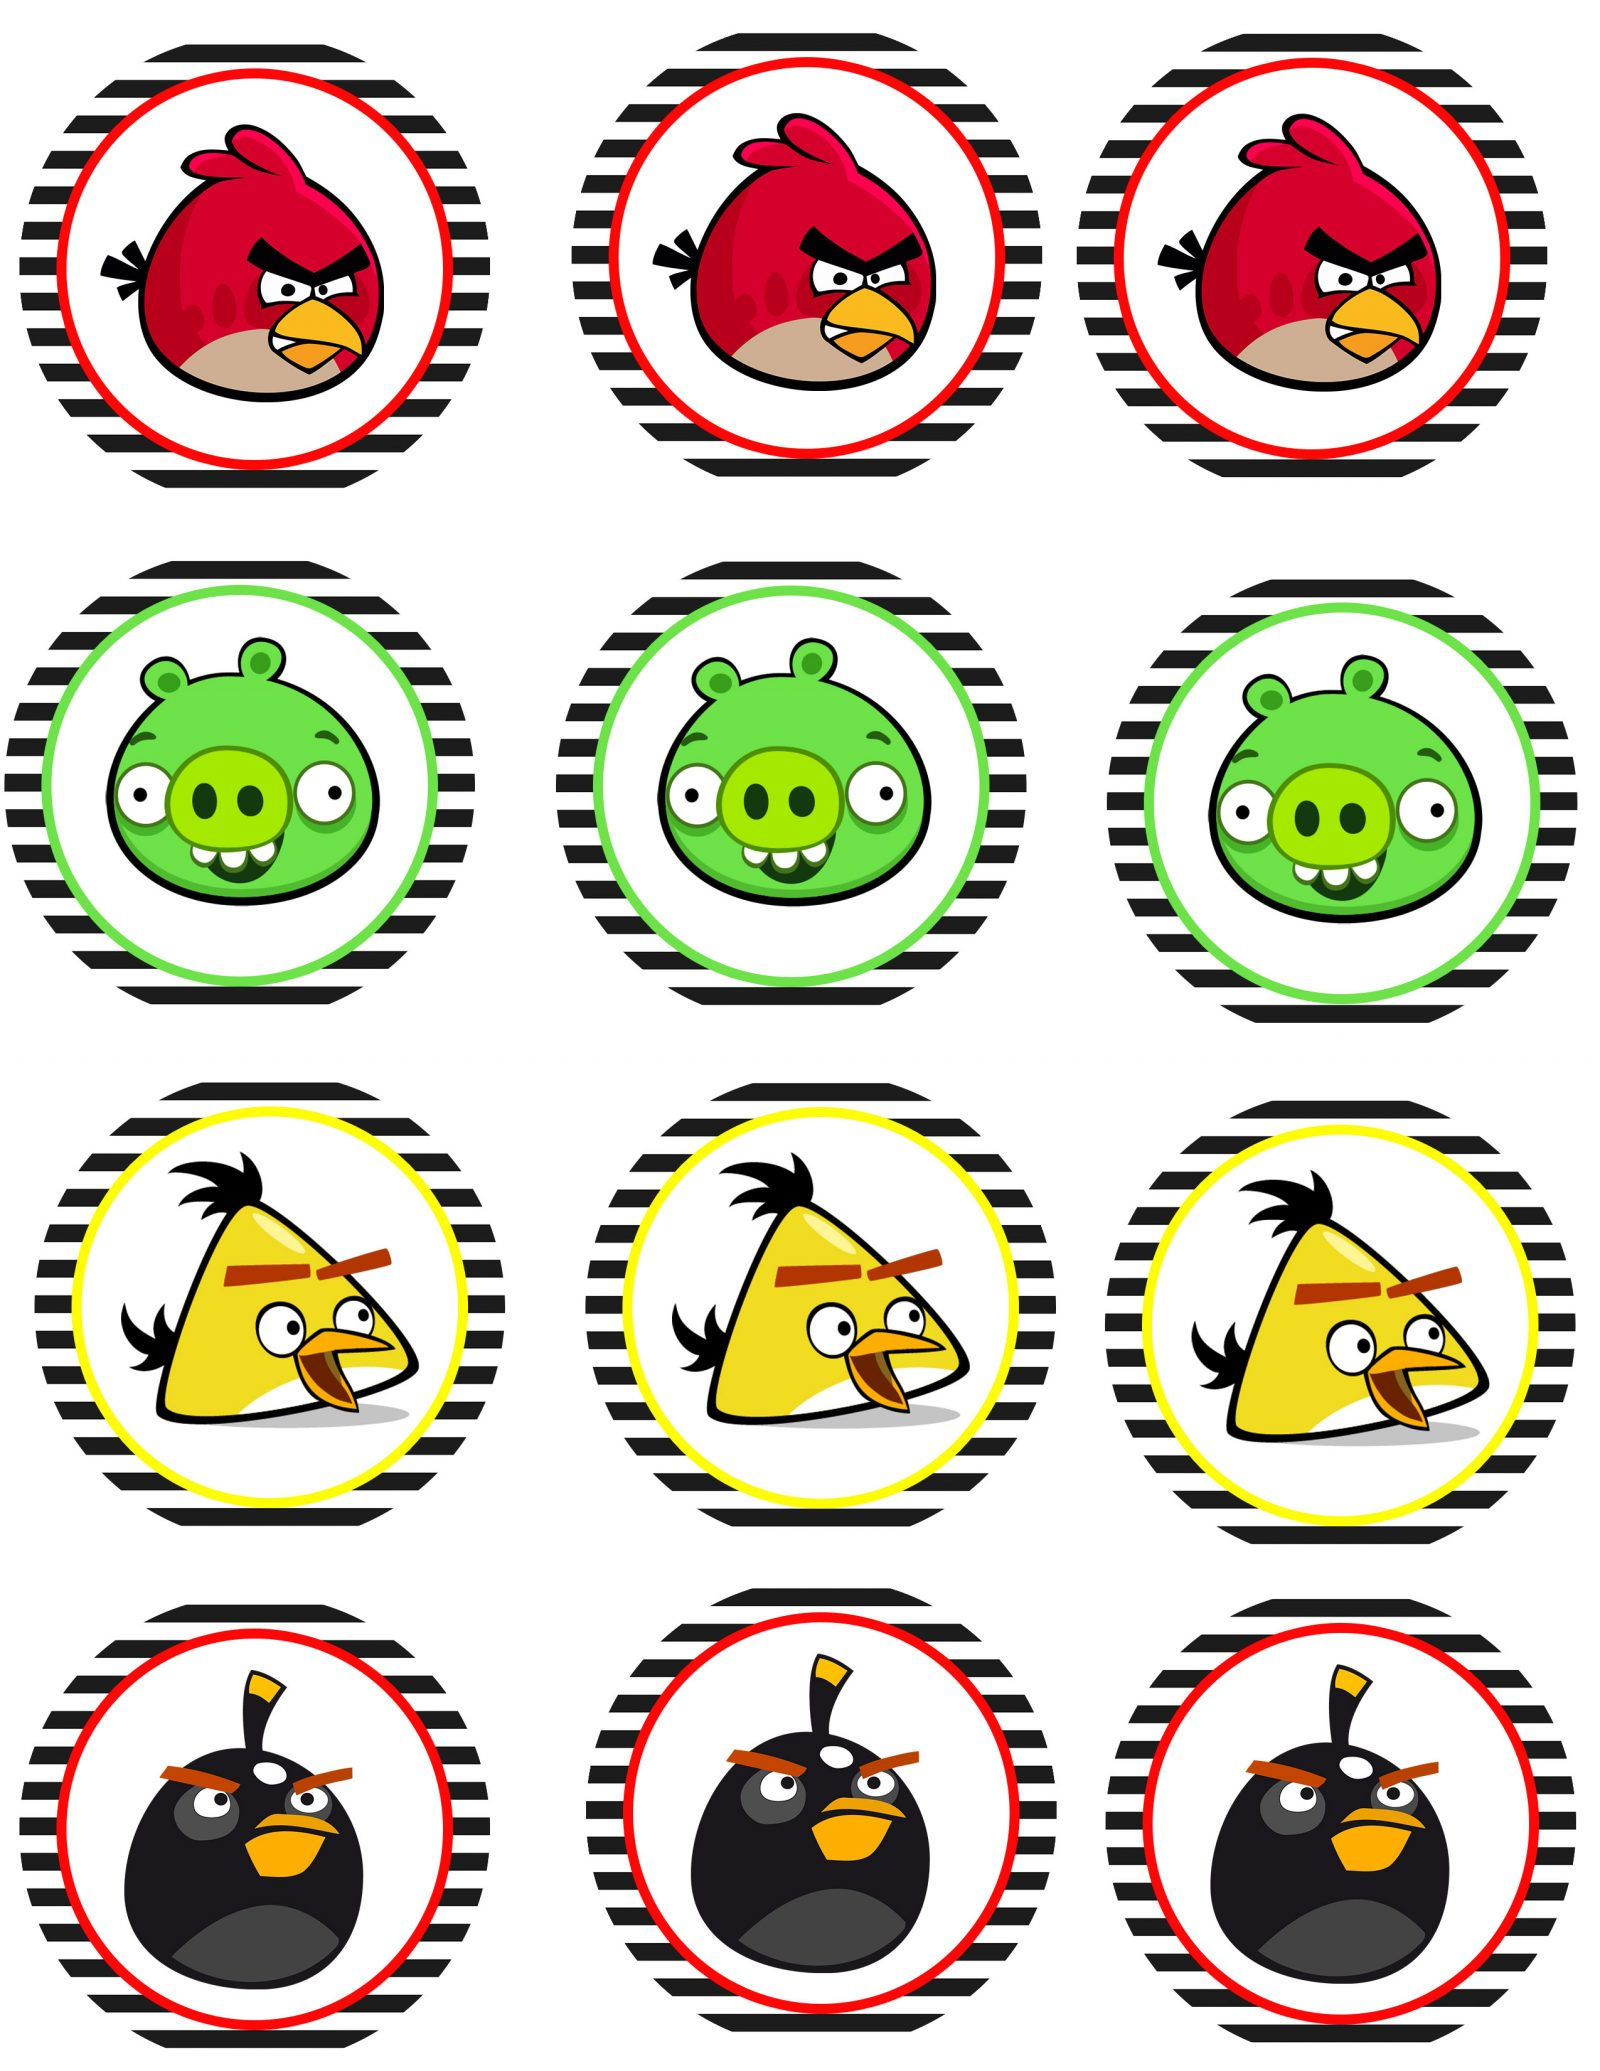 photo relating to Angry Birds Printable Faces known as Offended Birds Social gathering No cost Printables